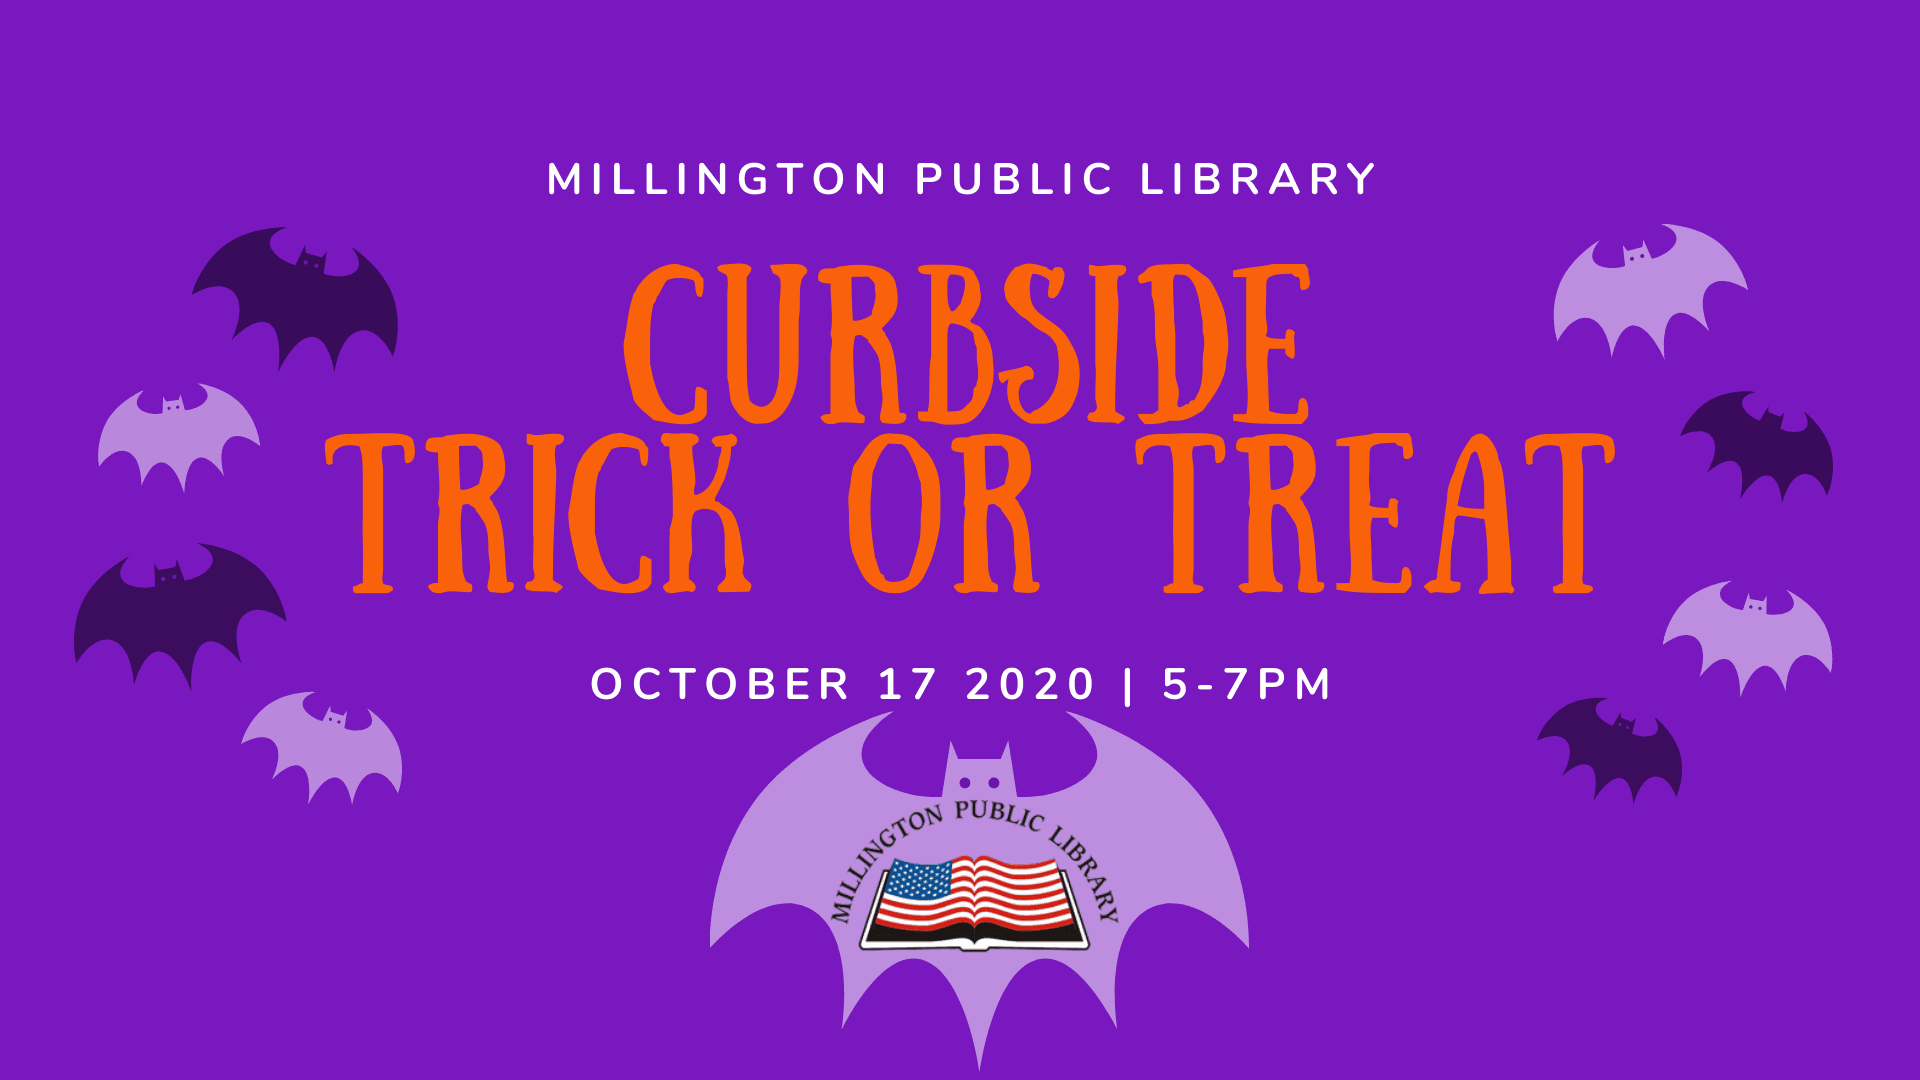 Millington Public Library Curbside Trick Or Treat. October 17, 2020, 5:00 p.m. to 7:00 p.m.